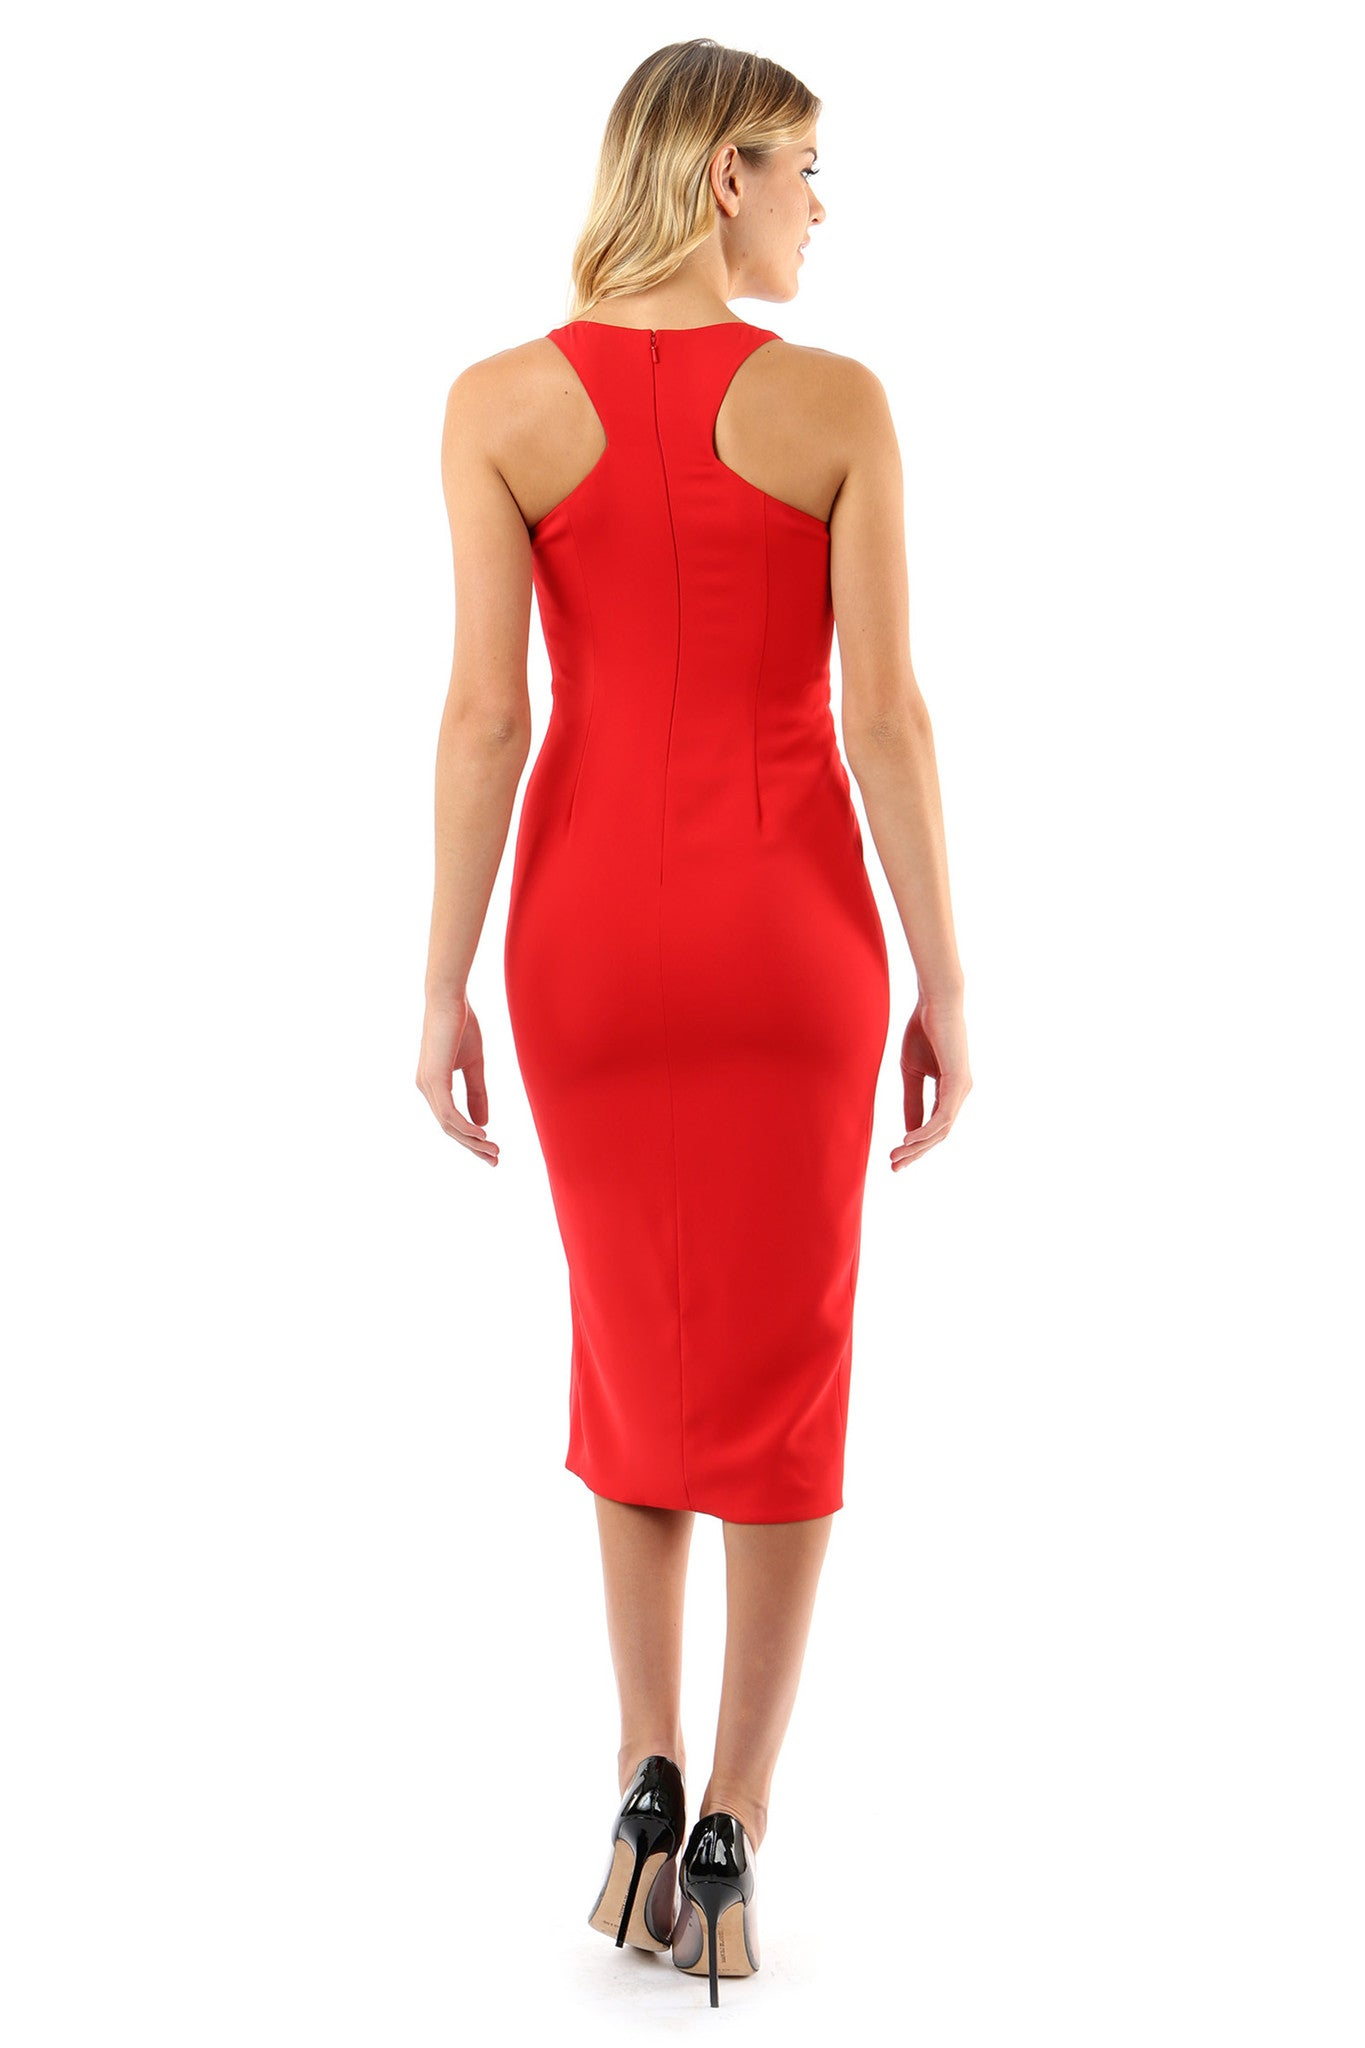 Jay Godfrey Red Fitted Scoop Neck Dress - Back View